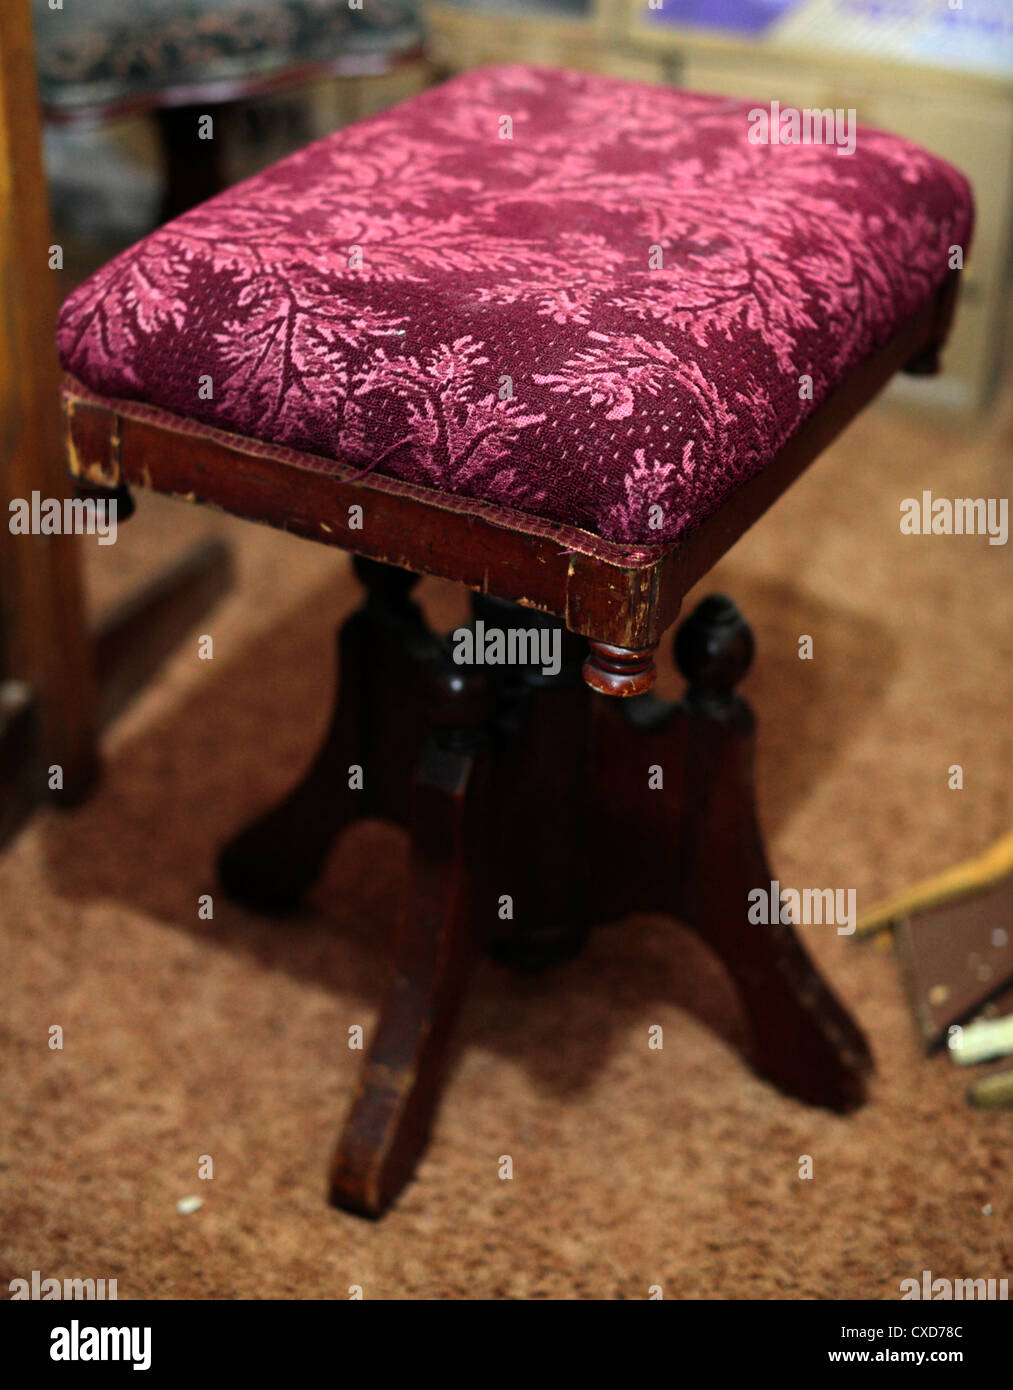 A square fabric-covered organ stool. - Stock Image